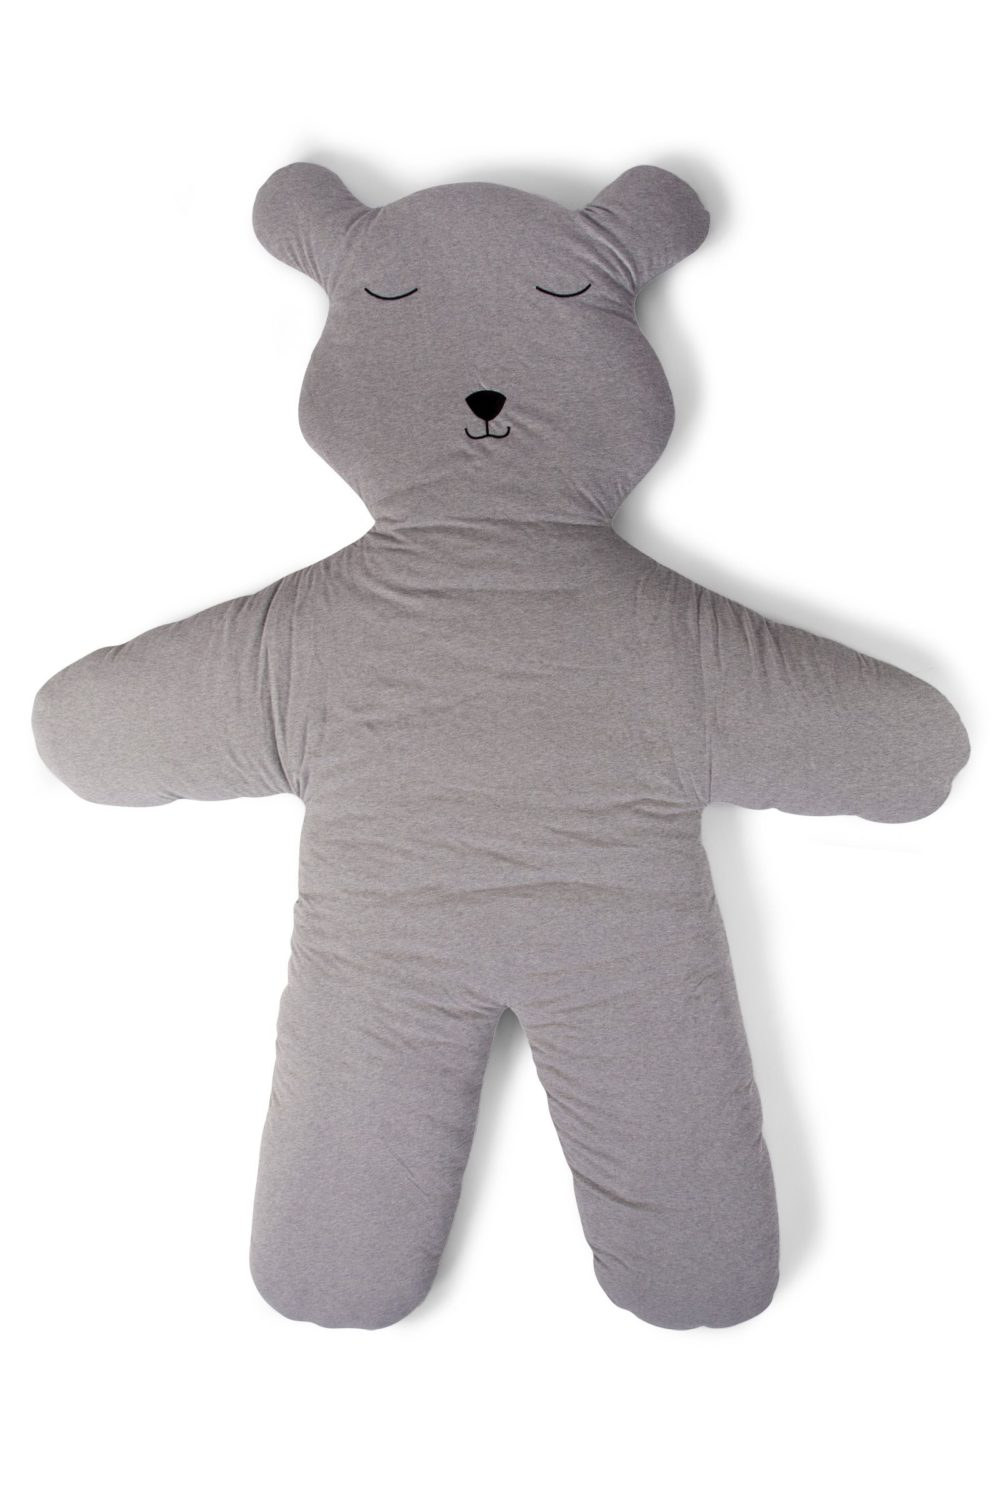 tapis d eveil ours teddy bear childhome majoliechambre